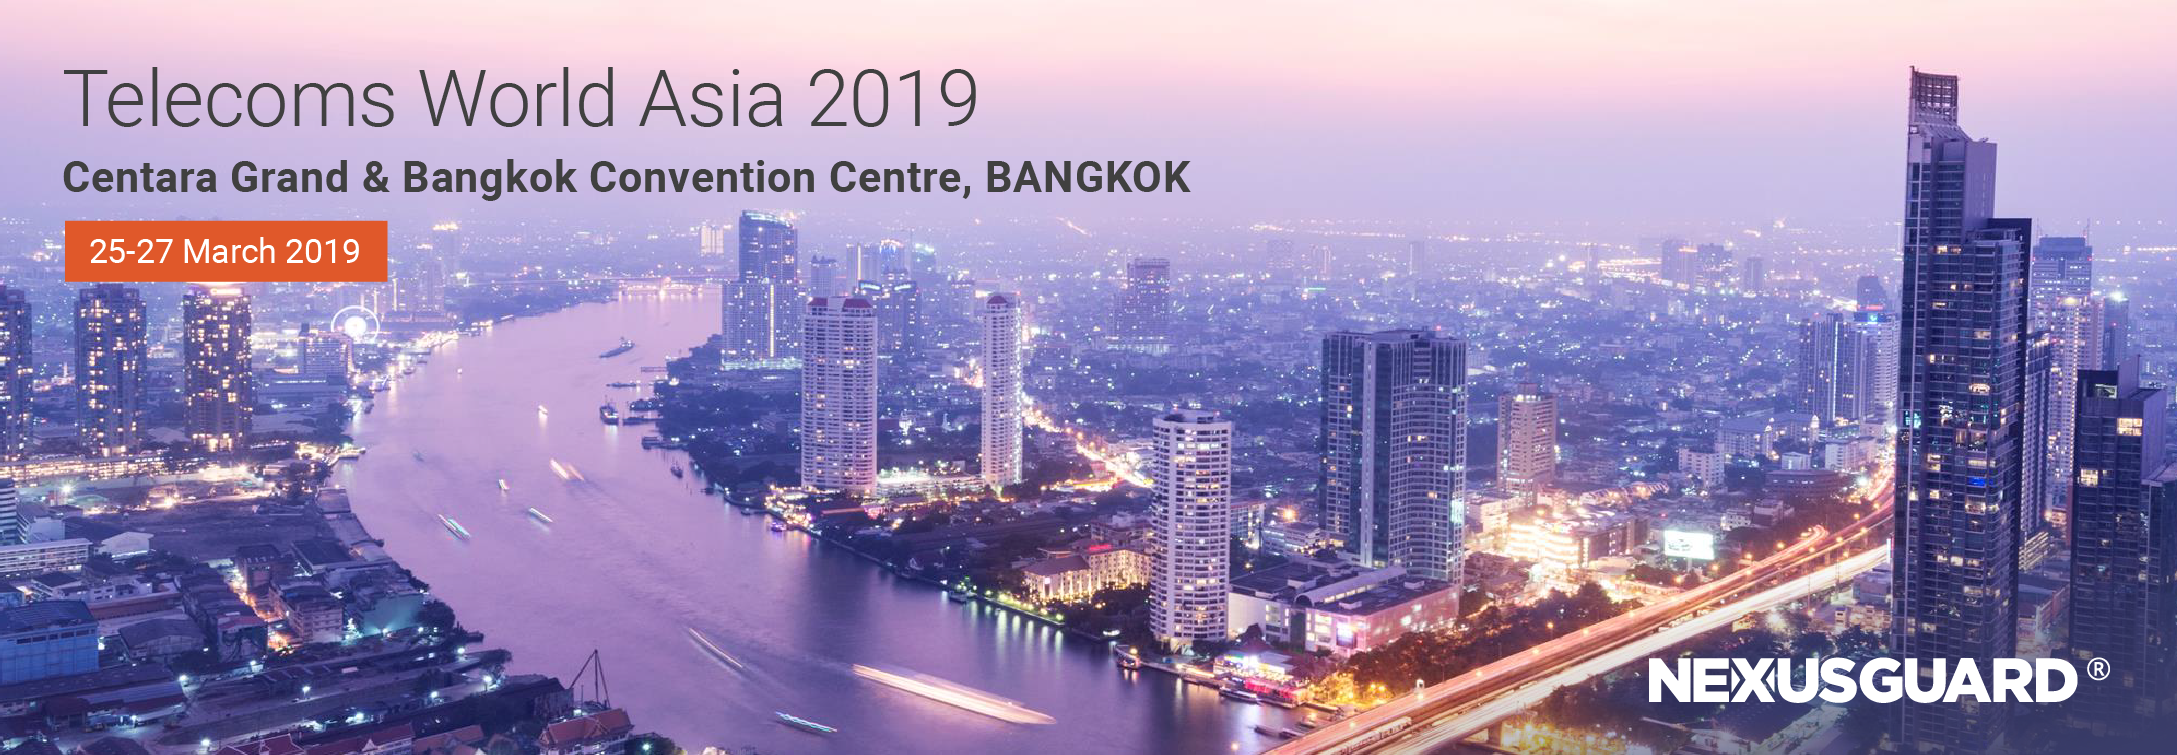 Telecoms World Asia 2019_Homepage